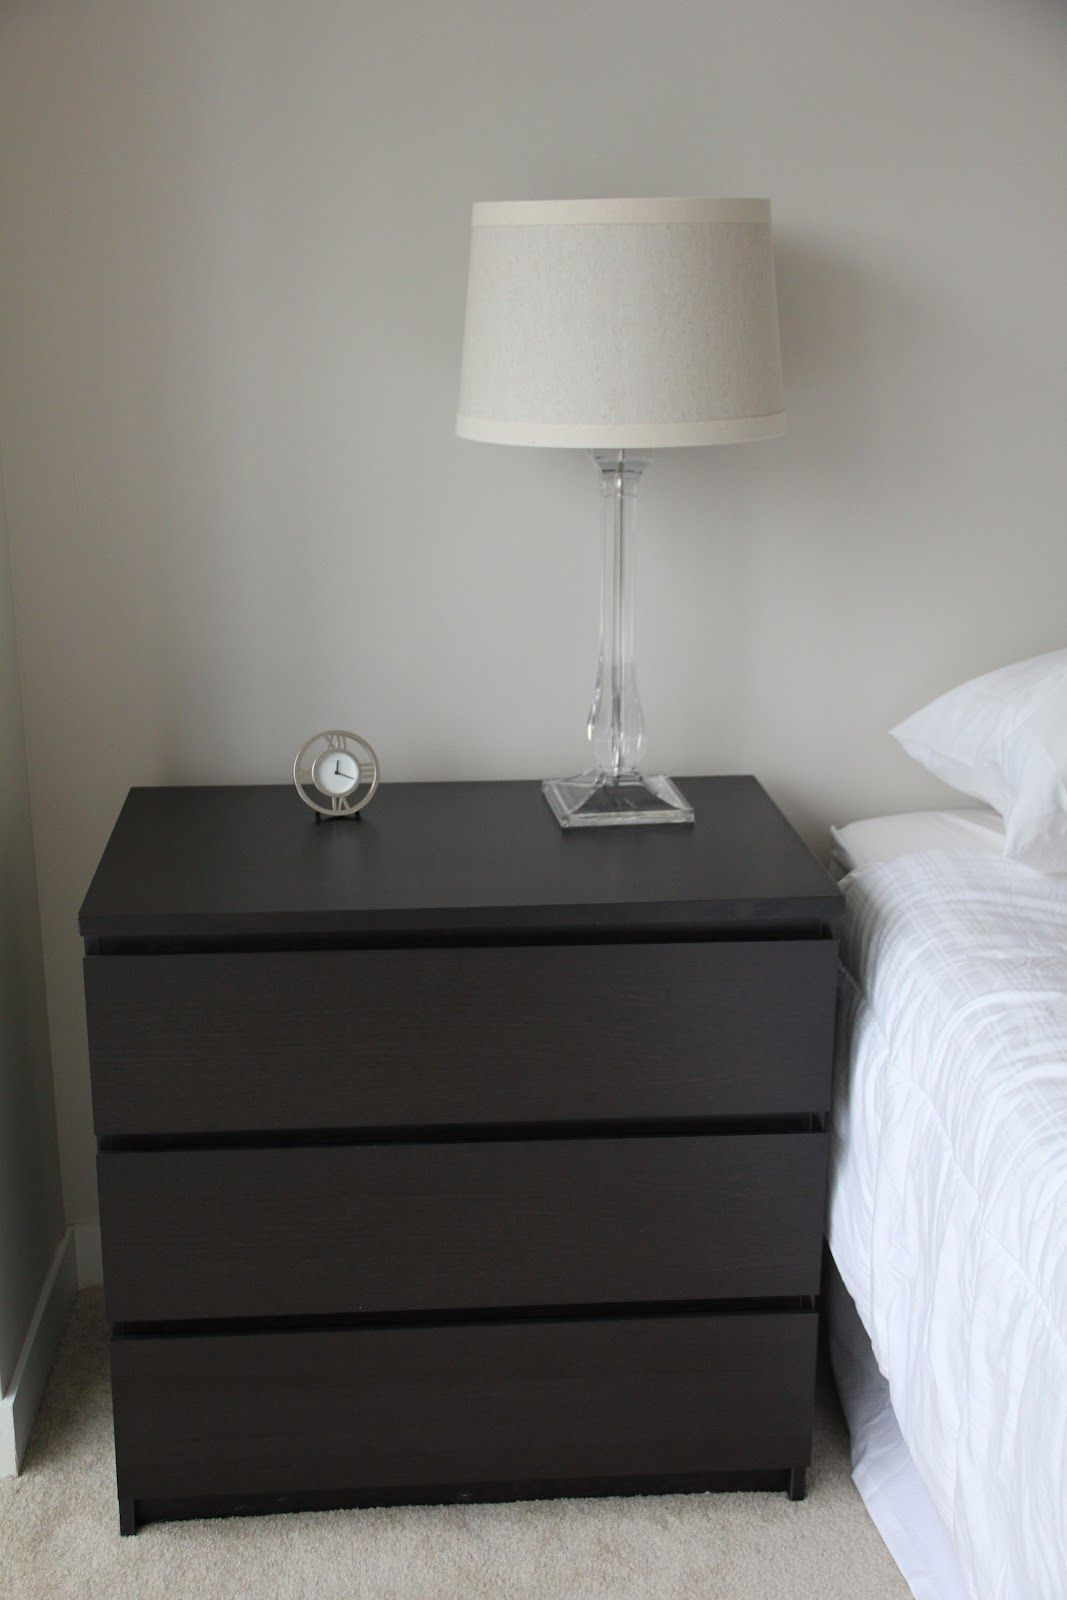 Malm 3 Drawer As Night Stand Furniture Pinterest